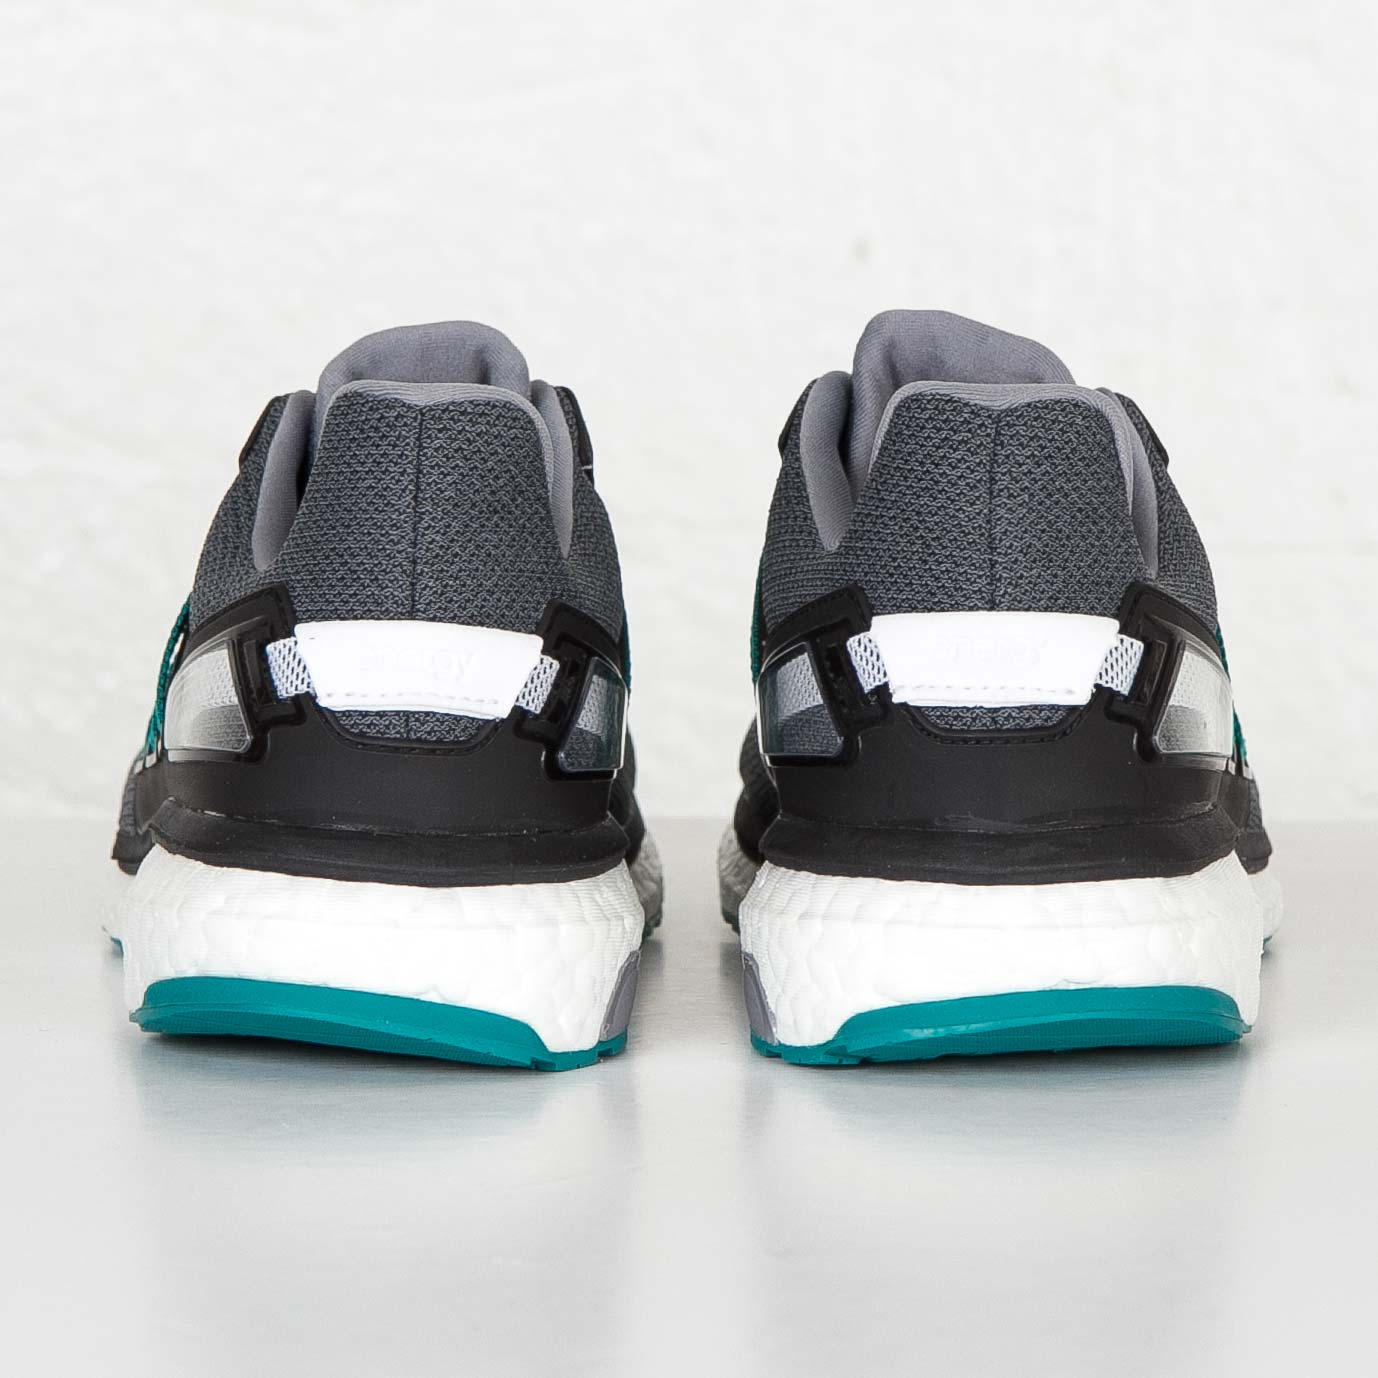 timeless design 1d311 61242 adidas Energy Boost 3 - Af4917 - Sneakersnstuff | sneakers ...